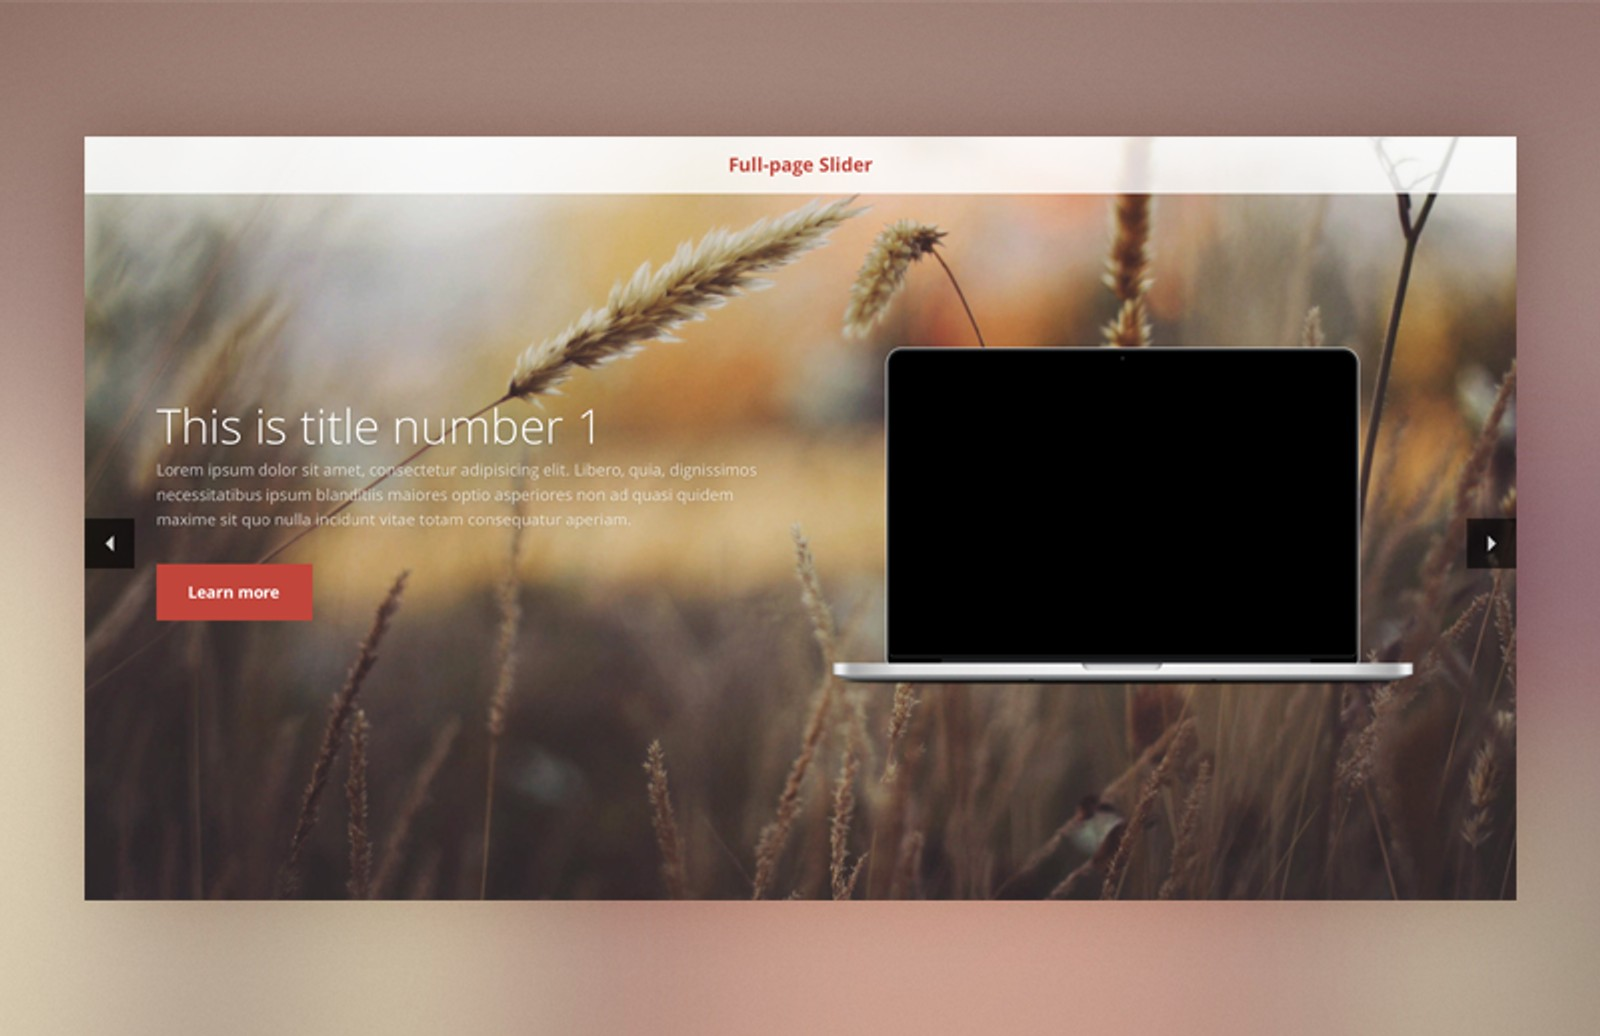 Fullpage Slider 1